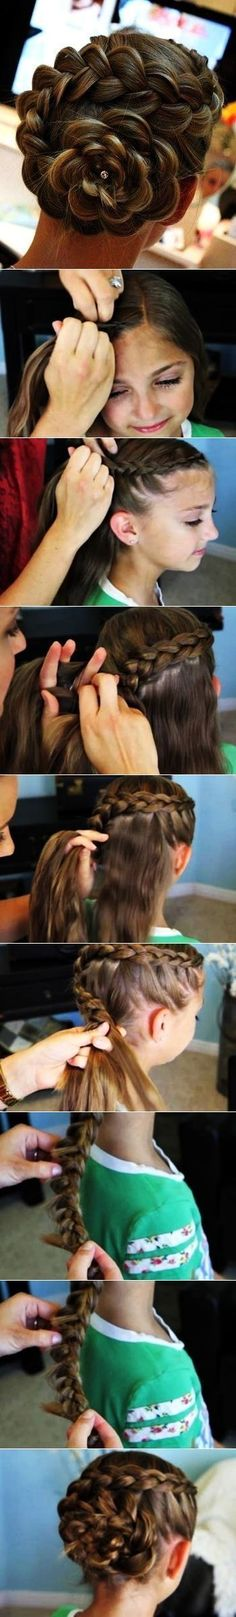 DIY Flower Hair beauty long hair updo braids how to diy hair hairstyles tutorials hair tutorials easy hairstyles #diyhairstyleseasy #diyhairstylesupdo #beautyhairstyles